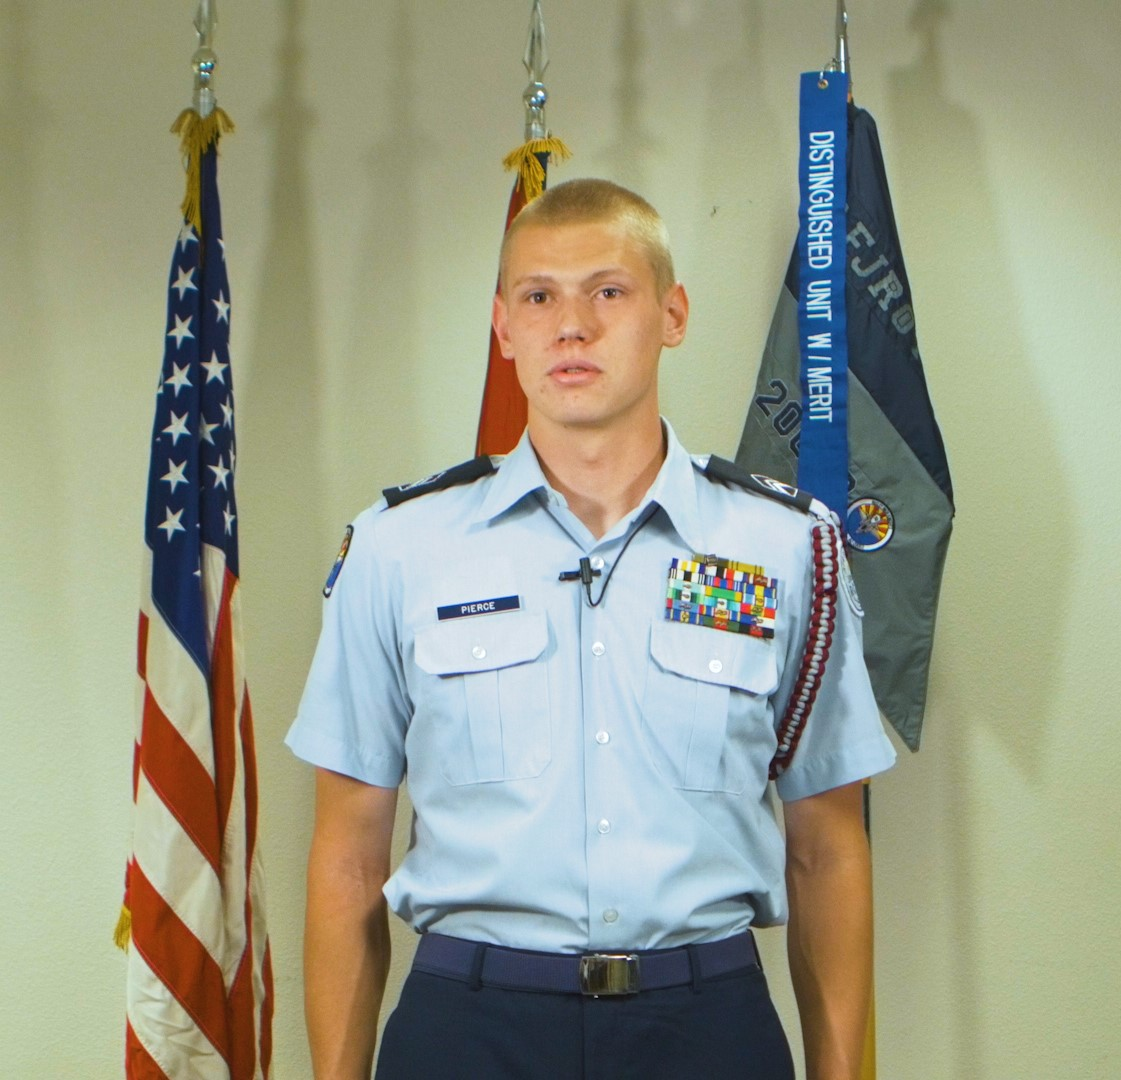 Higley High School Senior Selected For AFJROTC Flight Academy